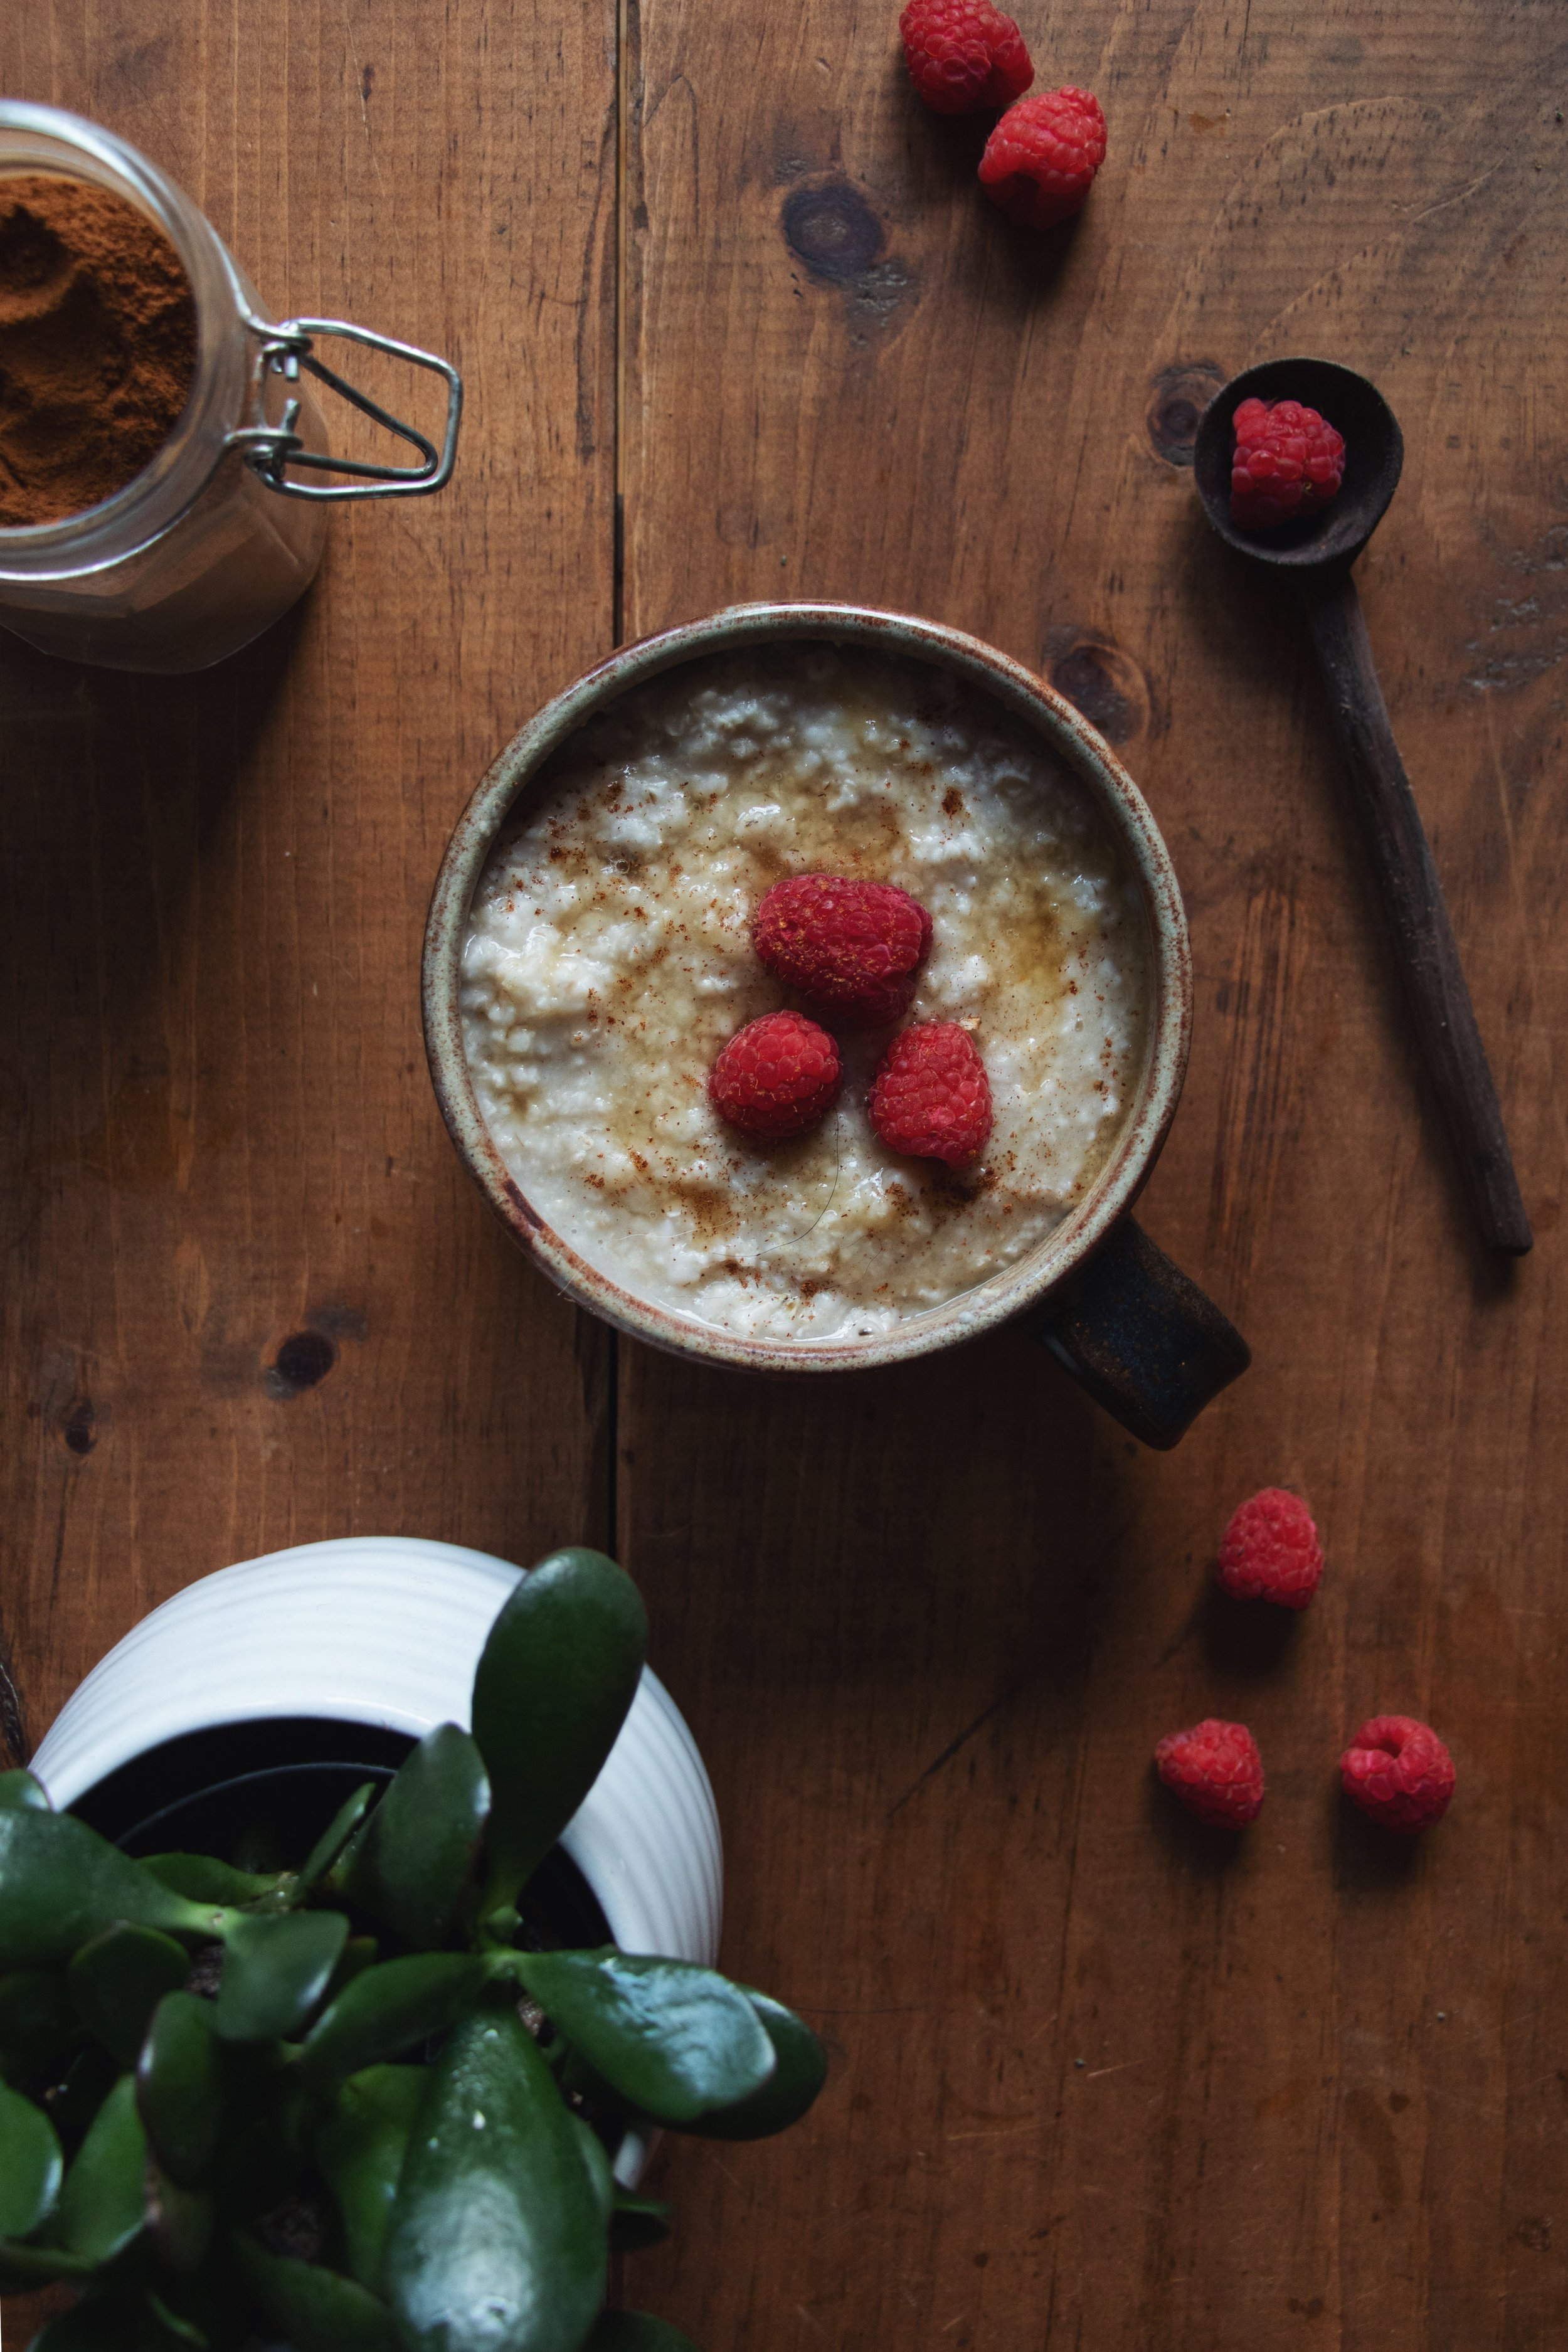 April 23rd - Oatmeal with fresh raspberries and cinnamon for breakfast